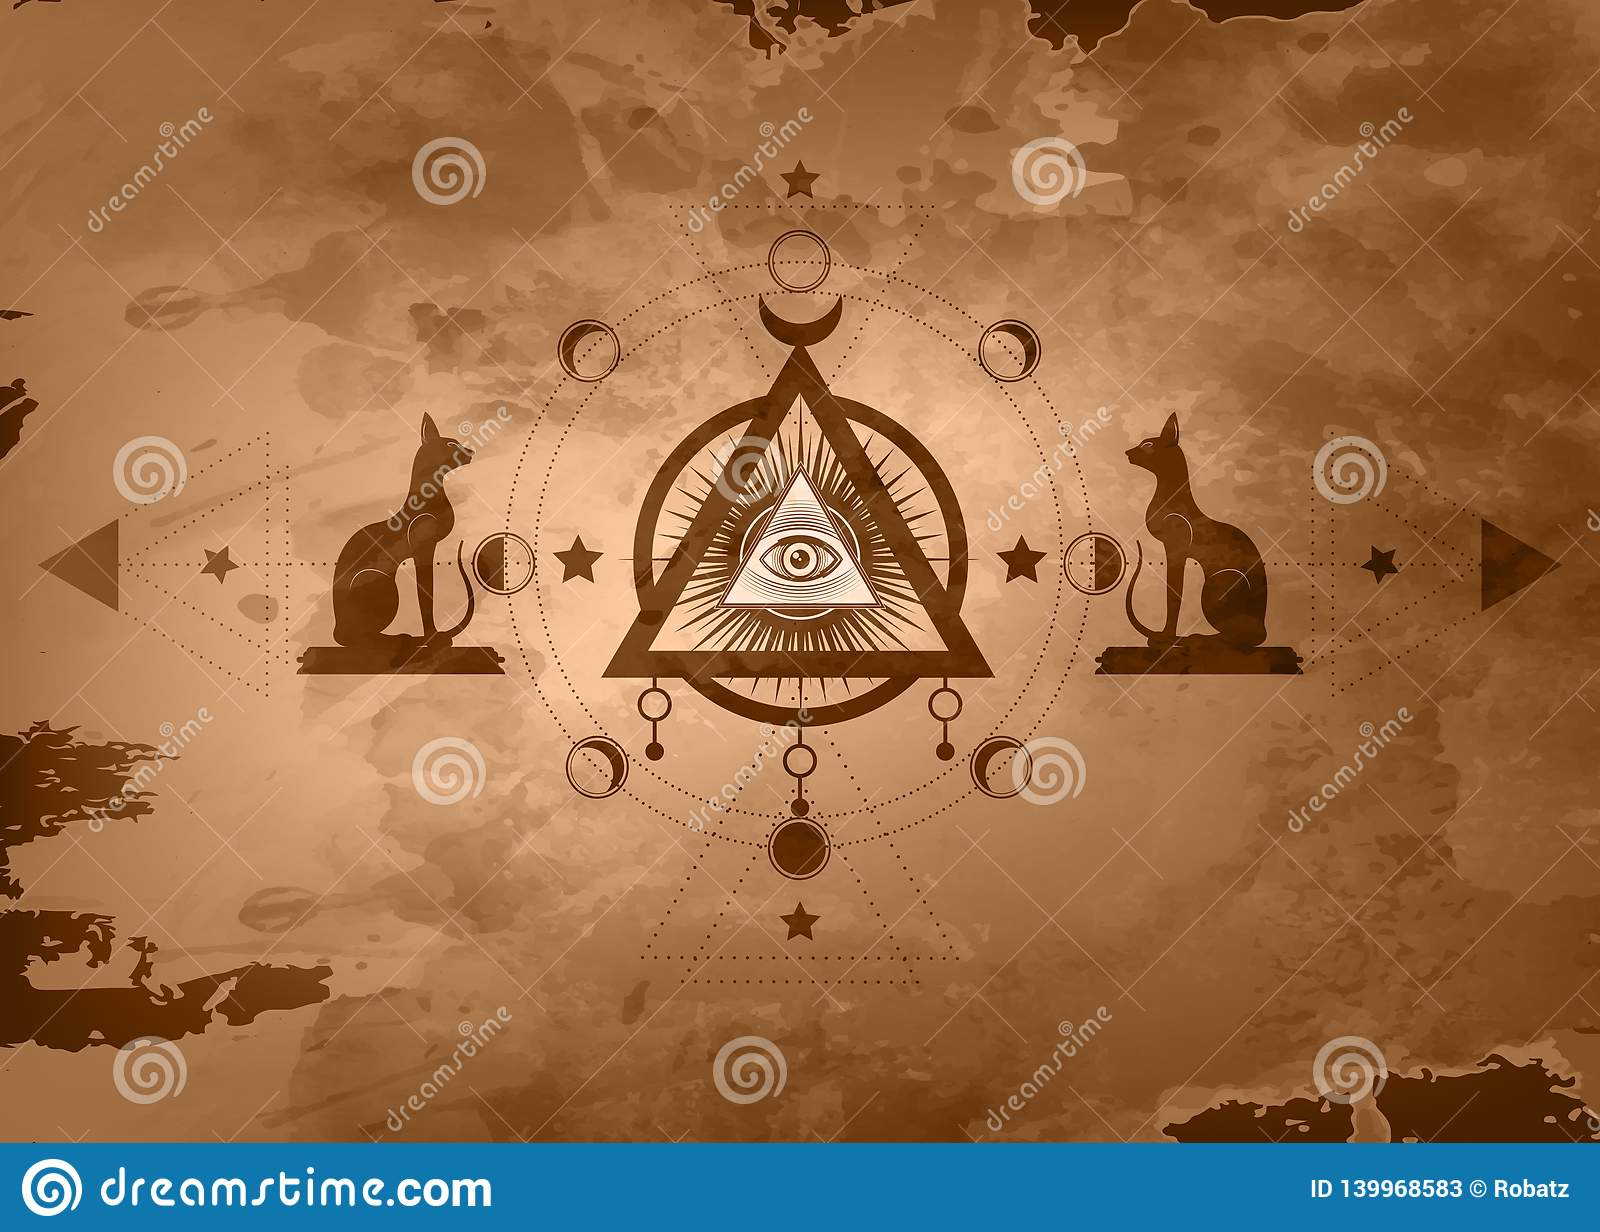 Mystical Drawing The Third Eye All Seeing Eye Circle Of A Moon Phase Sacred Geometry And Egyptian Cats Bastet Ancient Egypt Stock Vector Illustration Of Hipster Goddess 139968583,Baja Designs Squadron Sport Tacoma